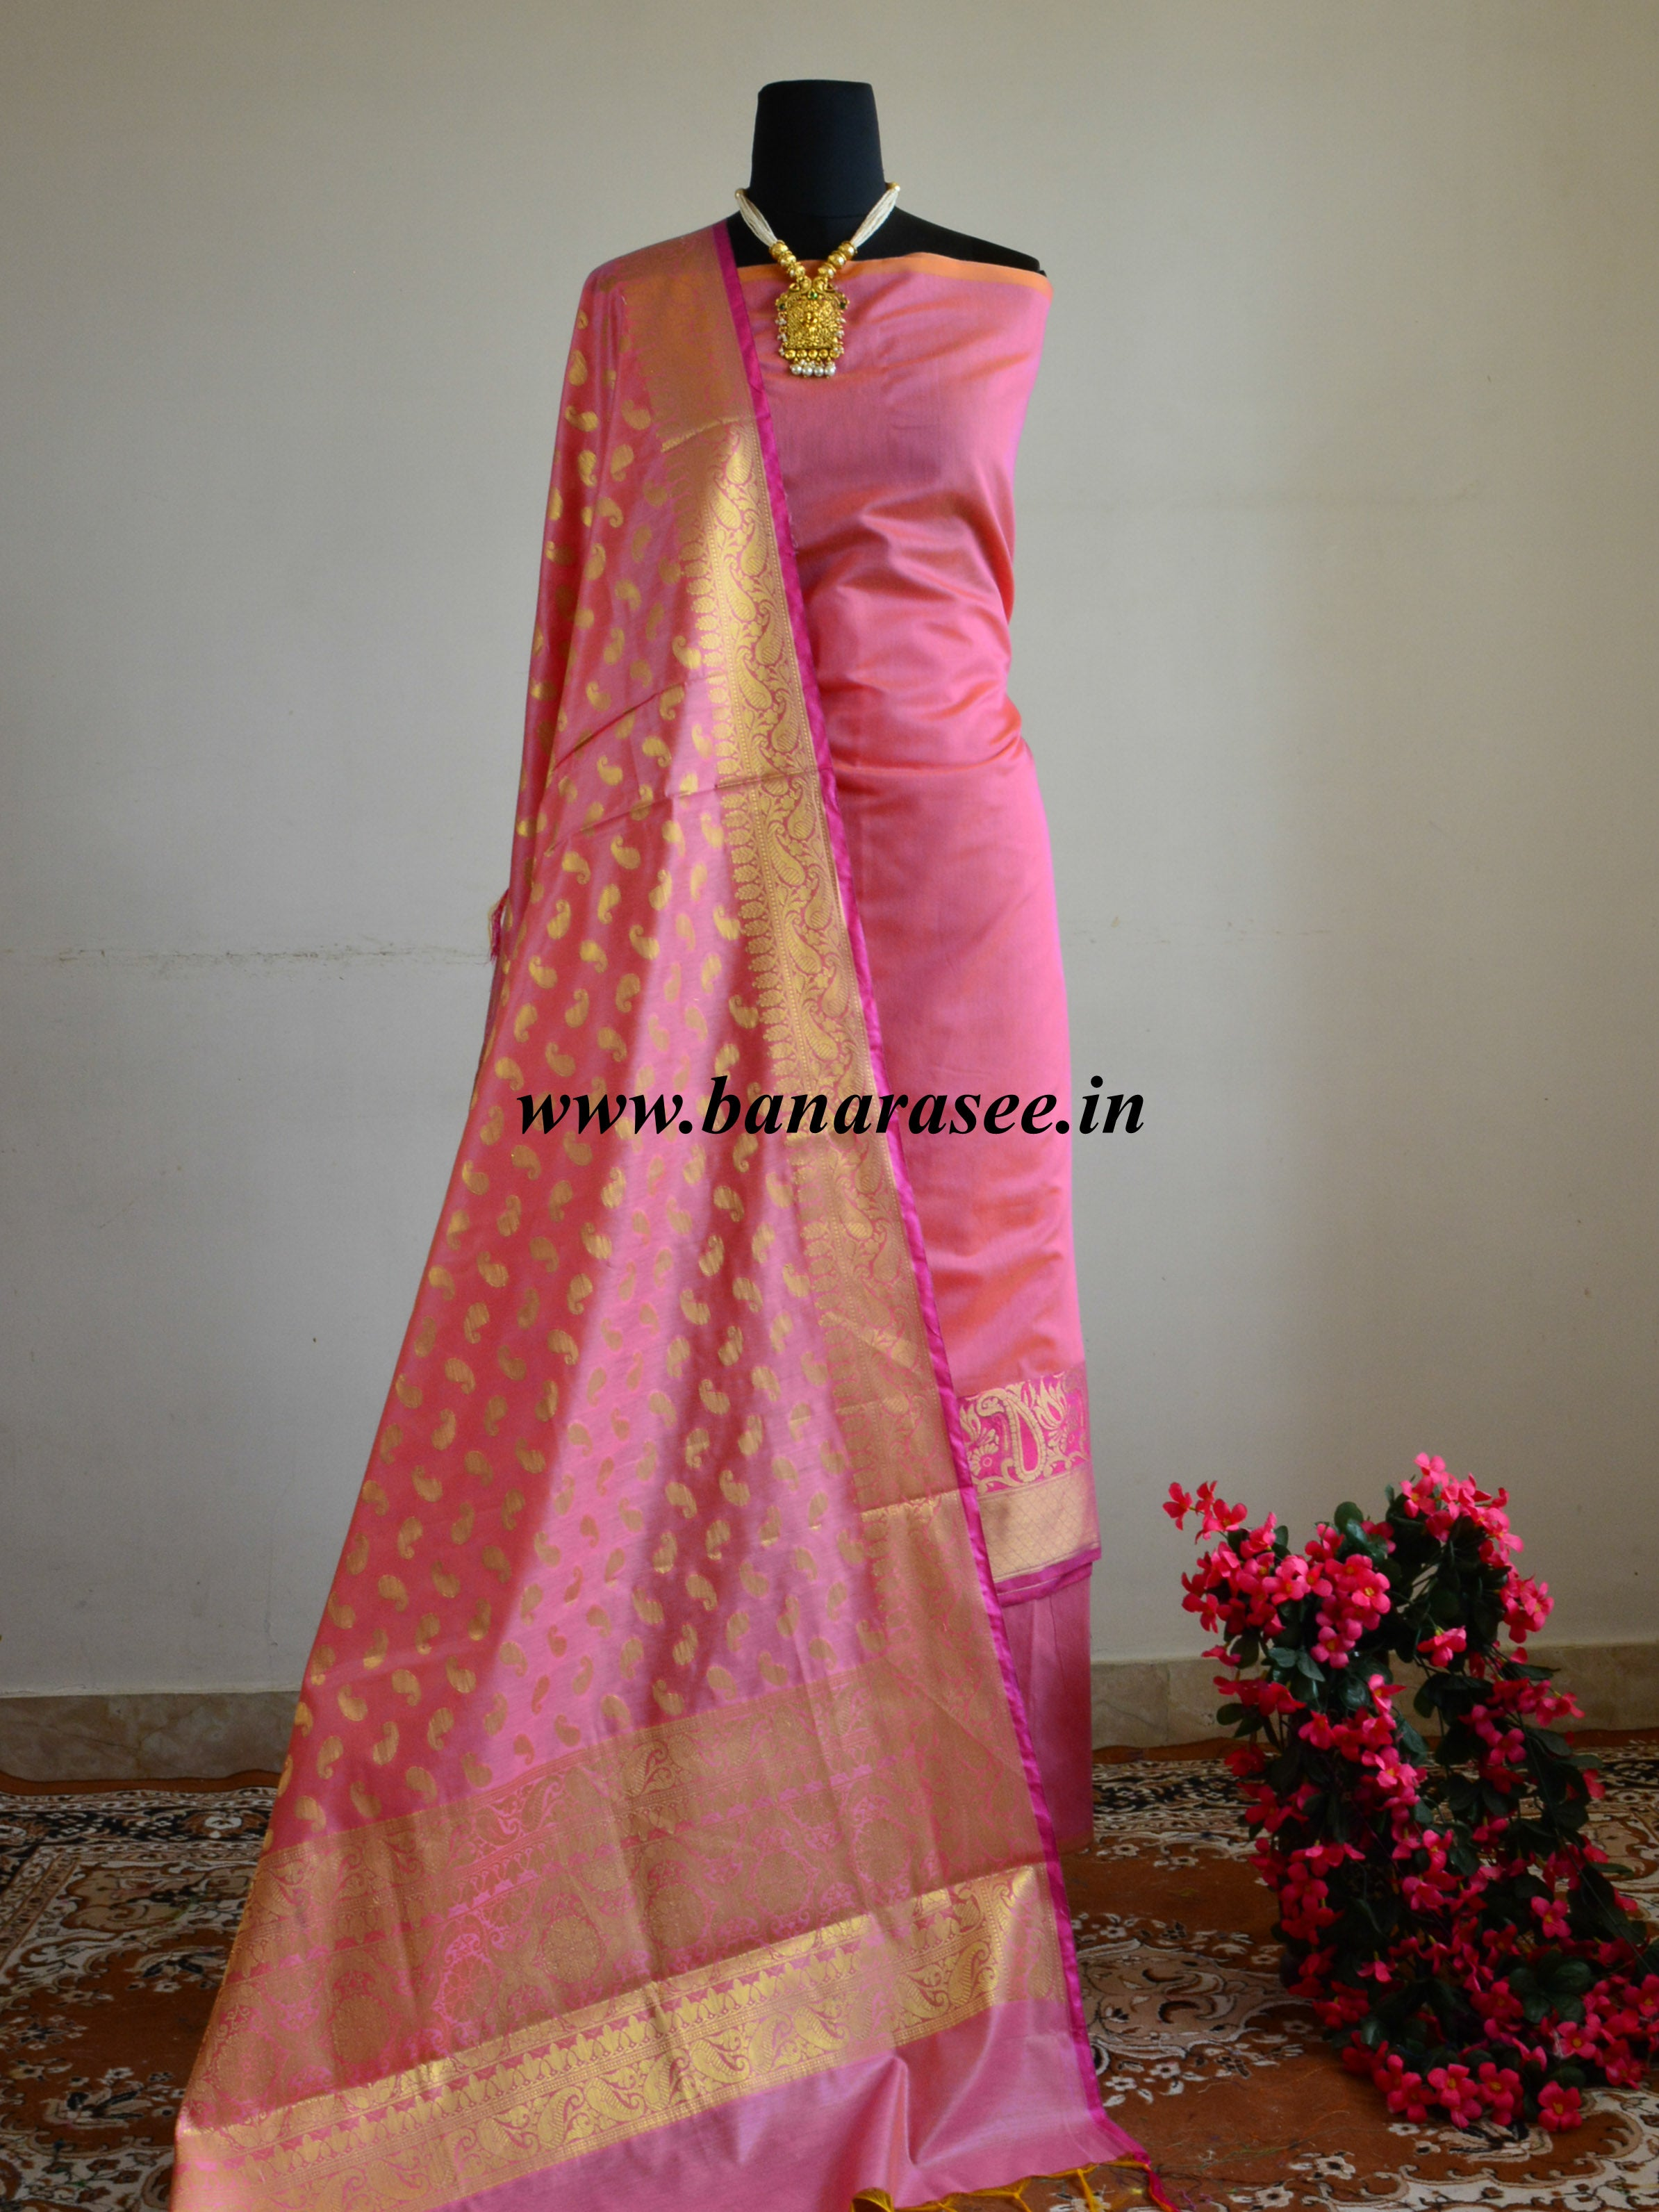 Banarasee Chanderi Cotton Salwar Kameez Fabric With Meena Border Design-Pink